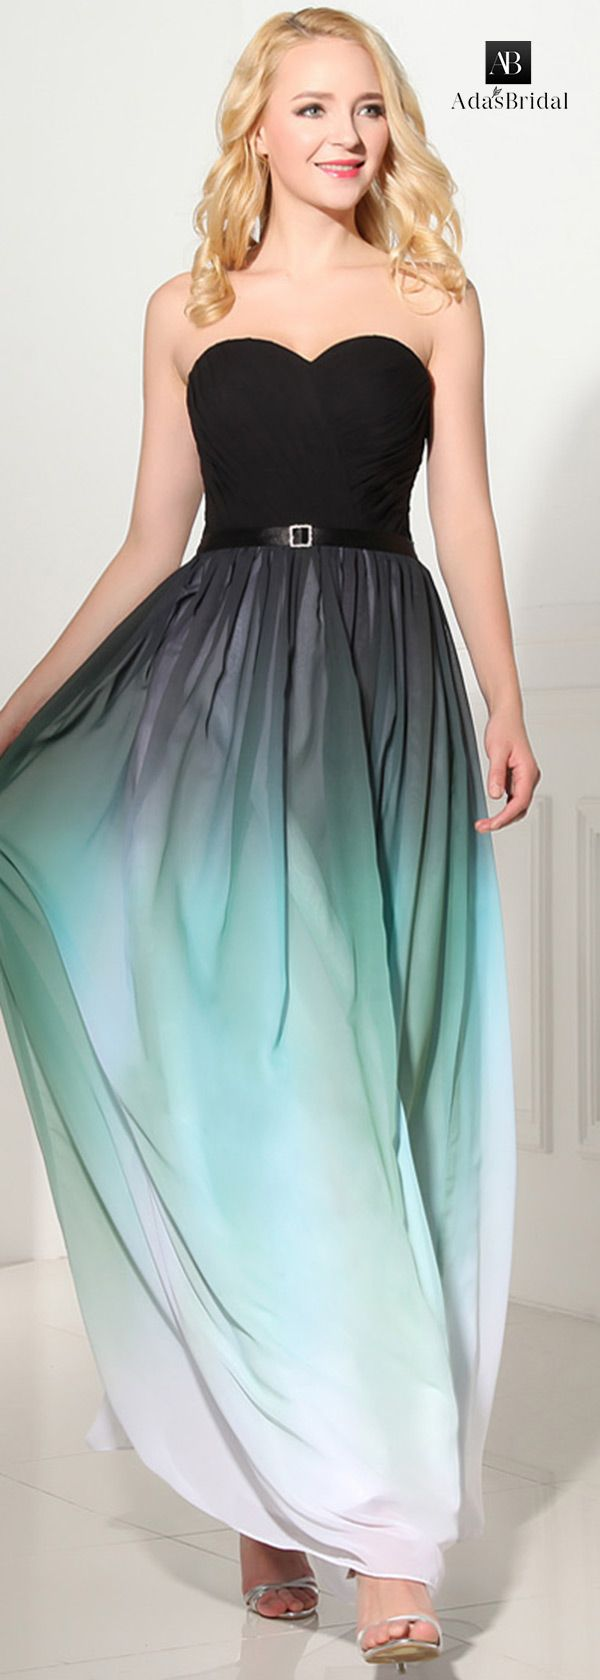 53 best Occasion Dresses Collection images on Pinterest | Evening ...